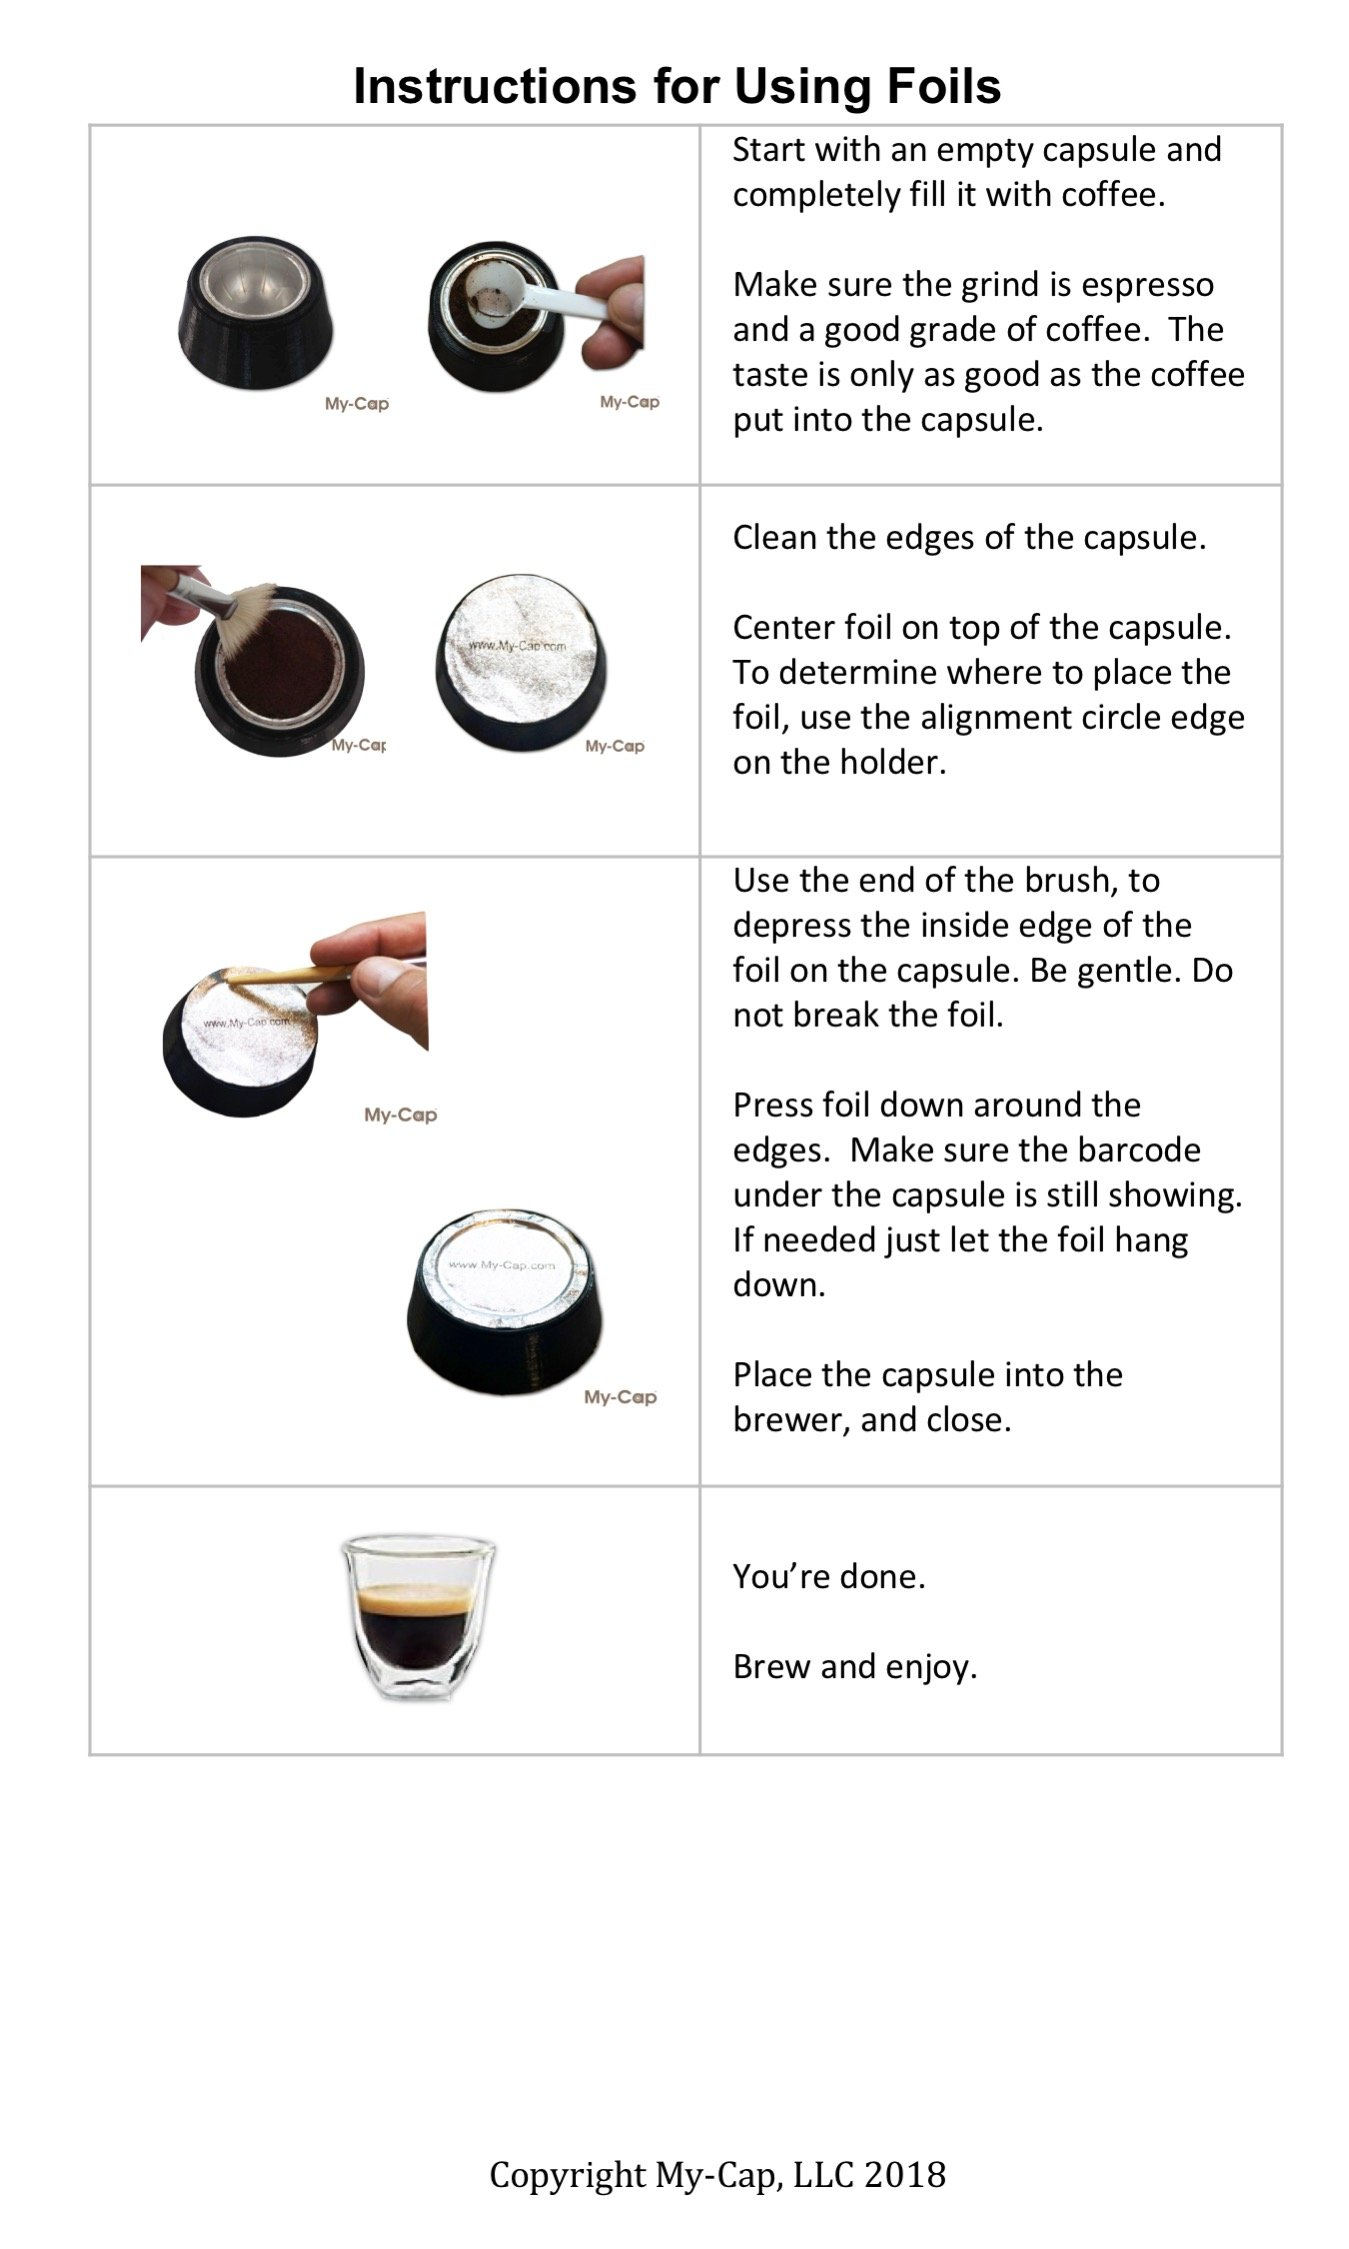 My-Cap vPACK - Complete Solution to Make Your Own Capsules and Pods for Nespresso VertuoLine Brewers by My-Cap (Image #2)